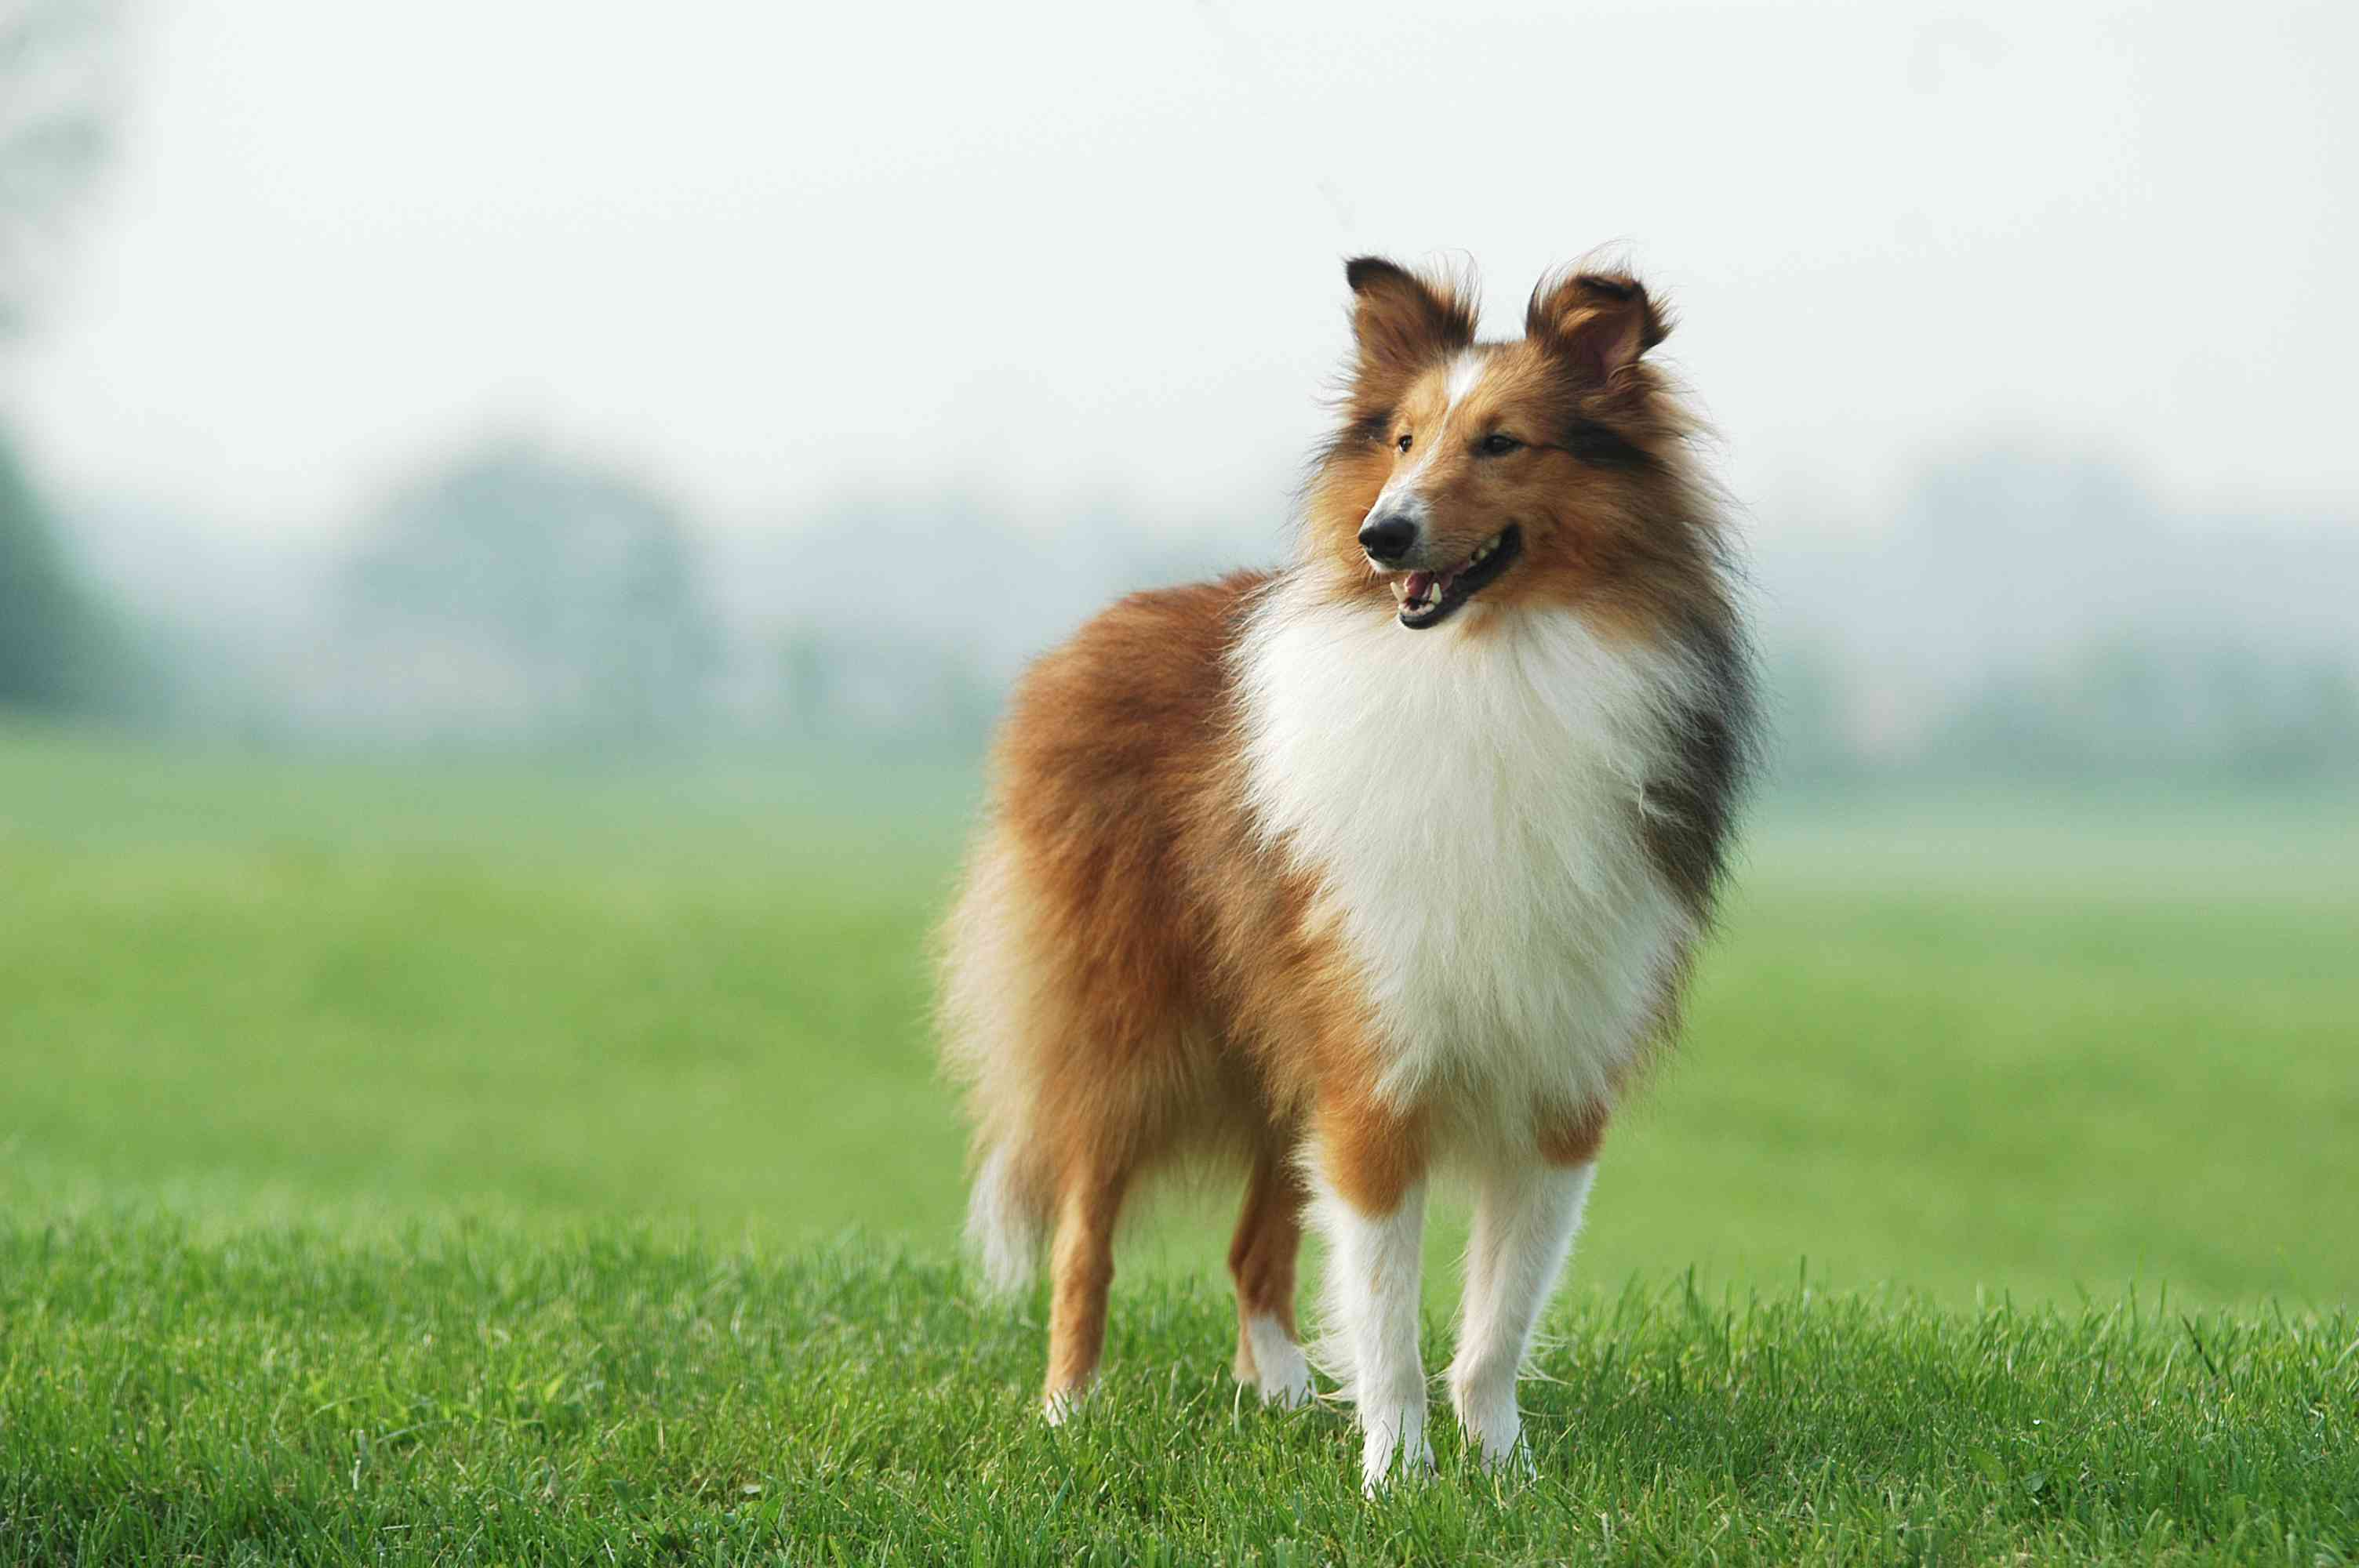 A longhaired collie dog standing in a misty field